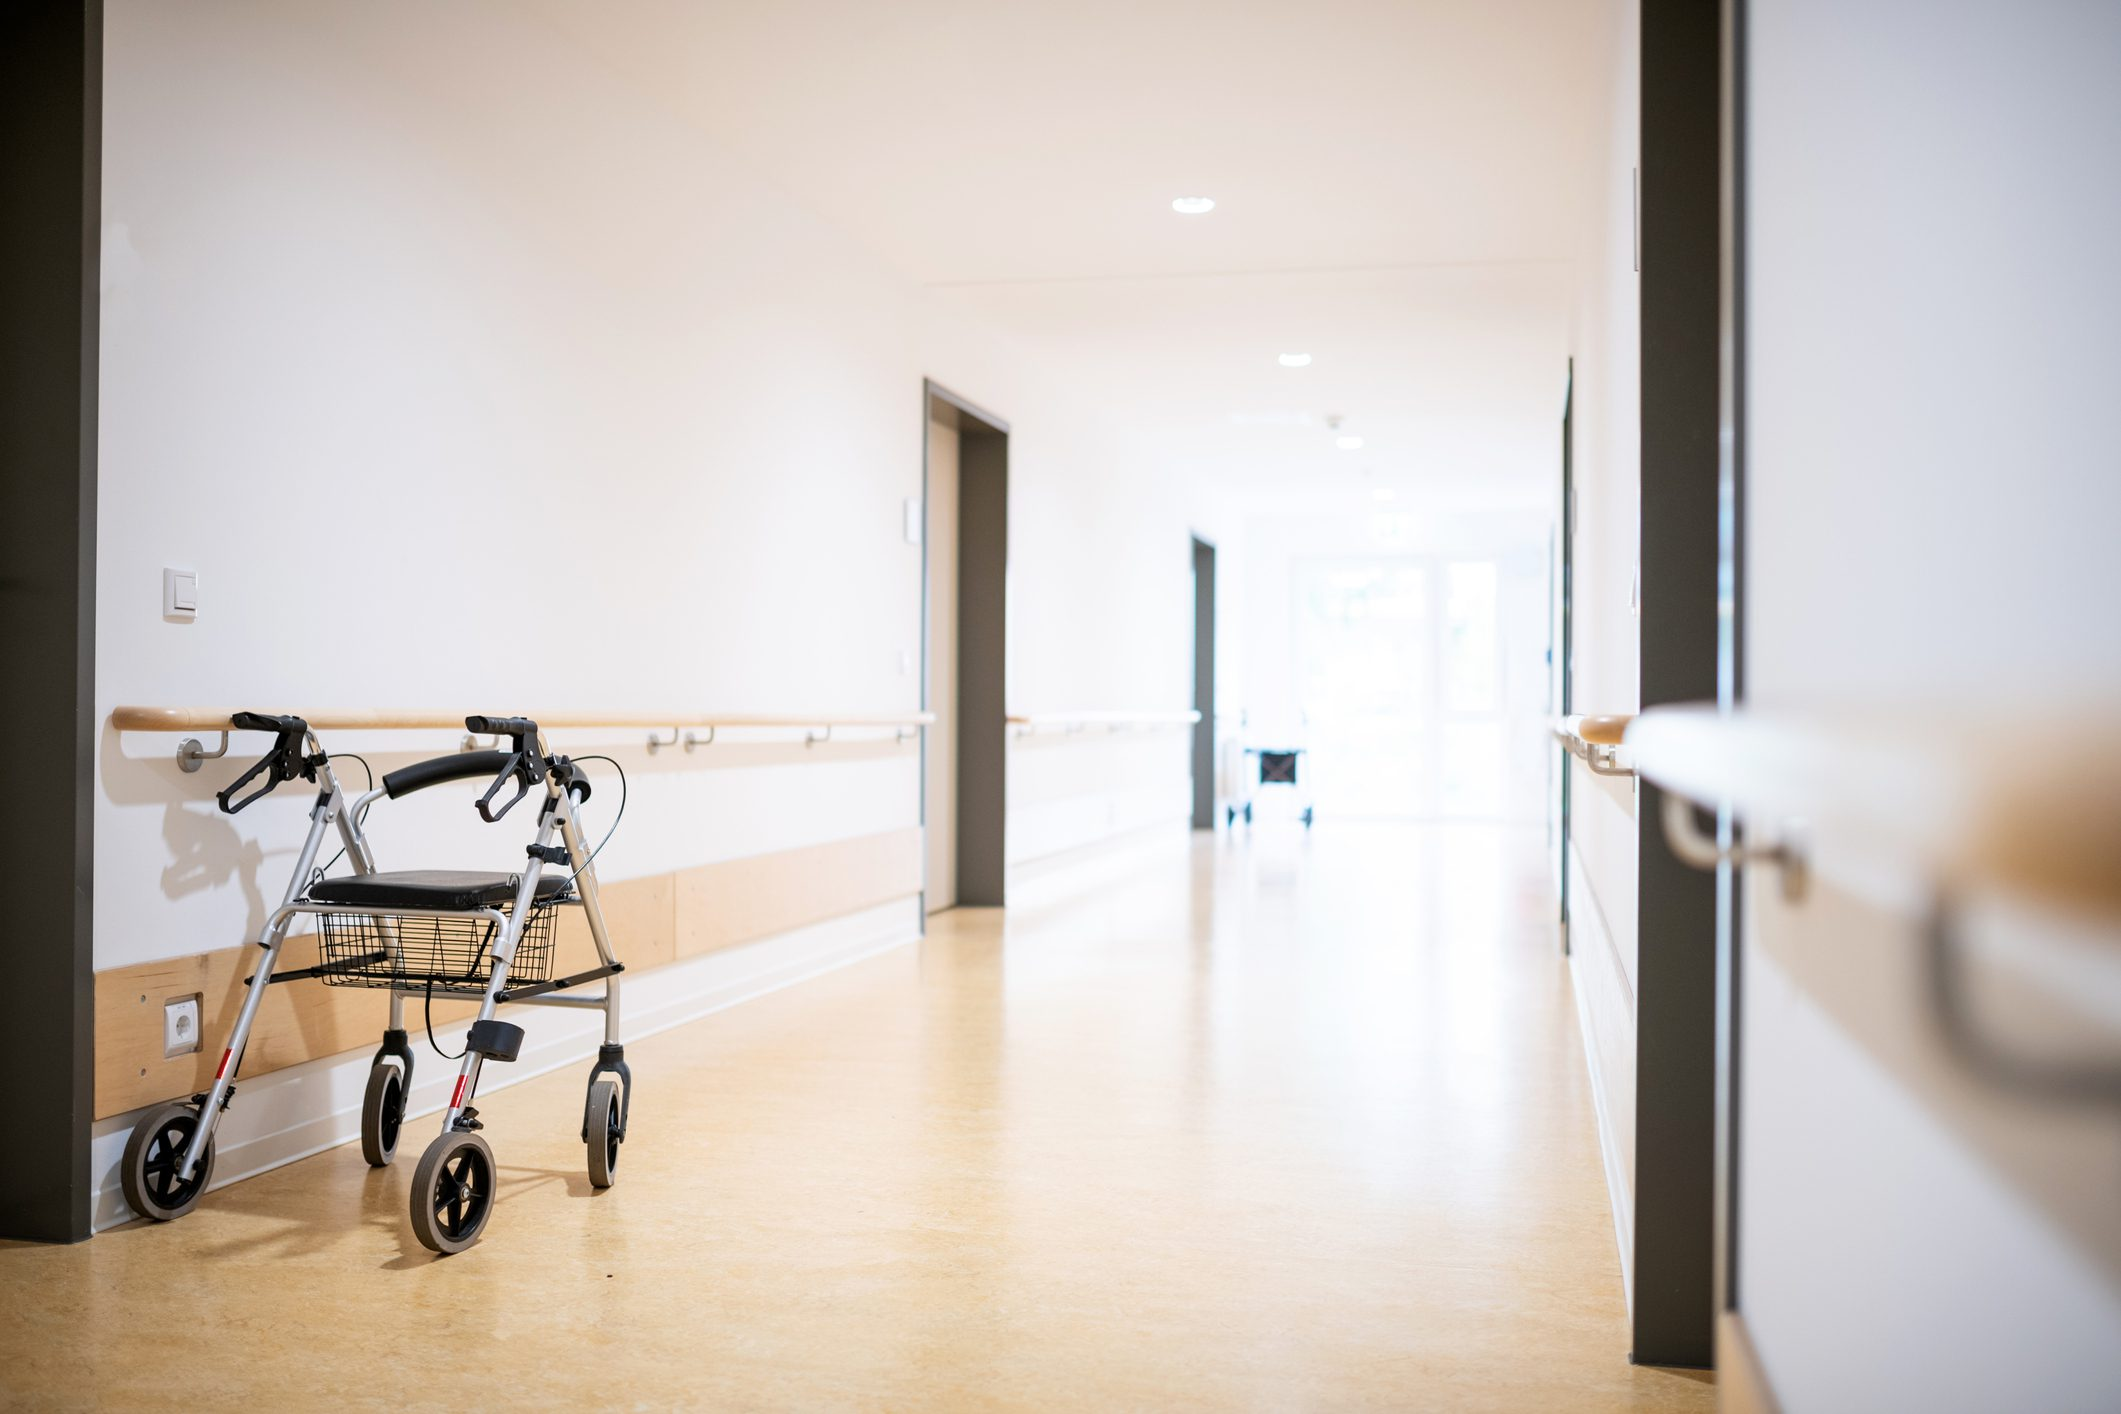 Across the senior living field, the future of long-term care is in flux.